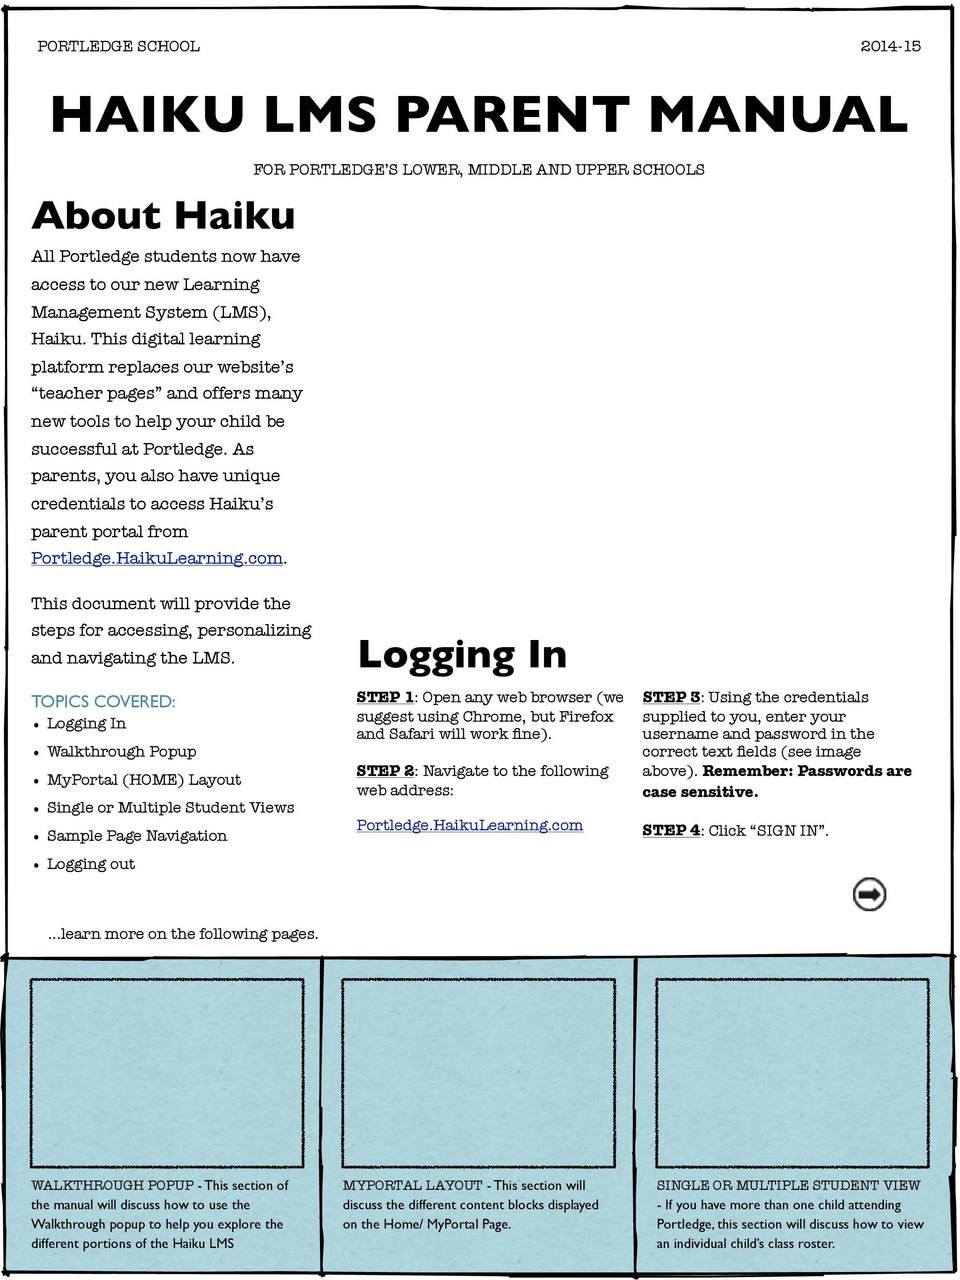 As parents, you also have unique credentials to access Haiku s parent portal from Portledge.HaikuLearning.com. This document will provide the steps for accessing, personalizing and navigating the LMS.